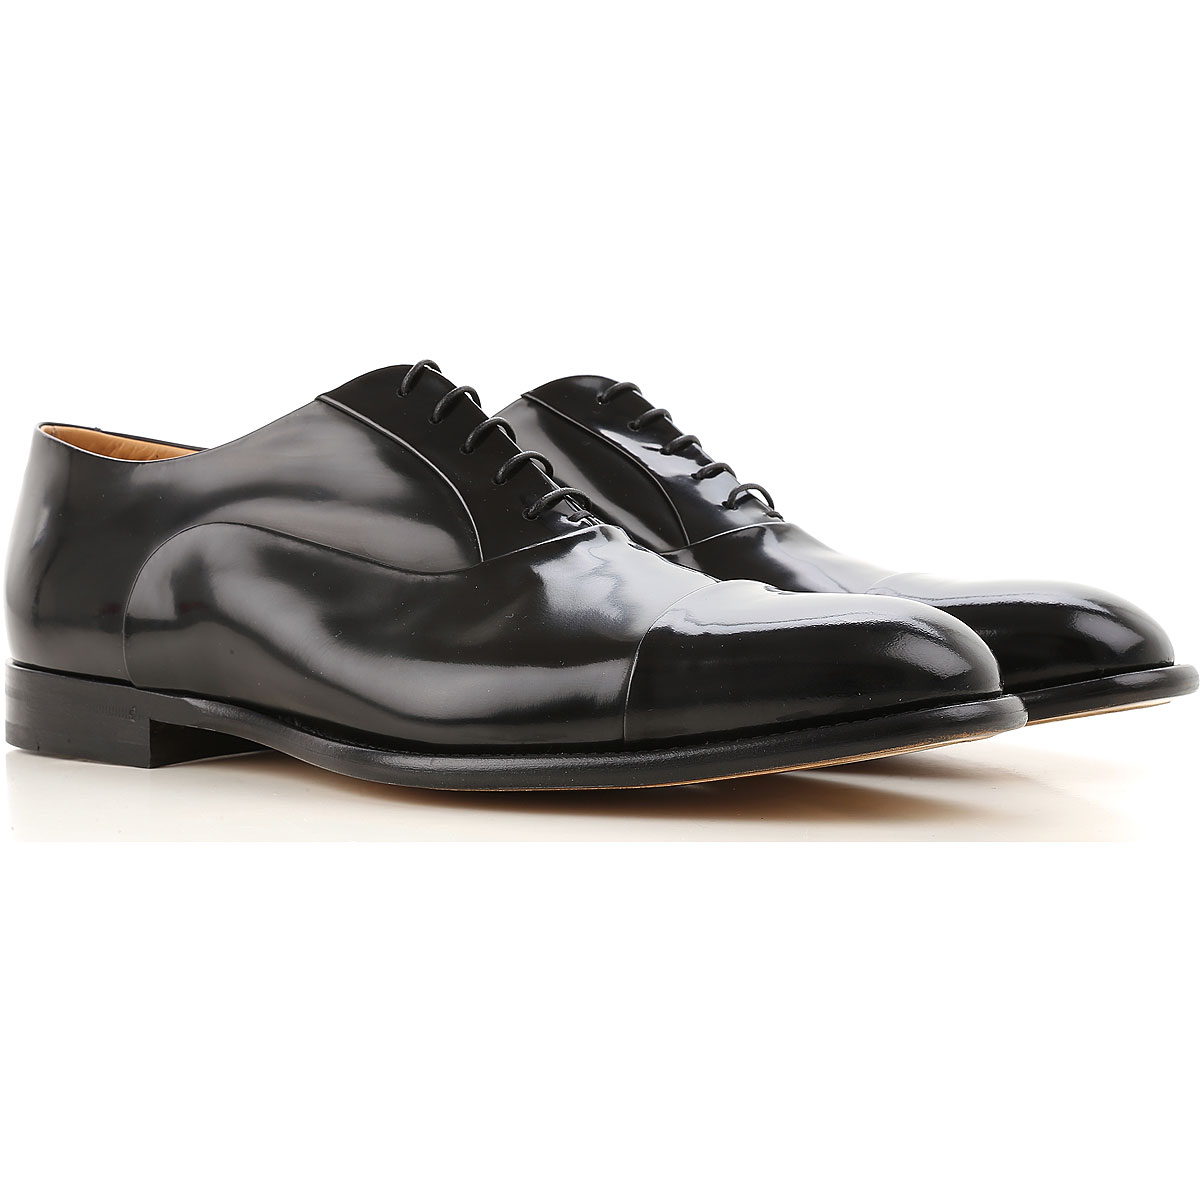 Image of Fabi Lace Up Shoes for Men Oxfords, Derbies and Brogues, Black, Leather, 2017, 10 7 7.5 8 8.5 9 9.5